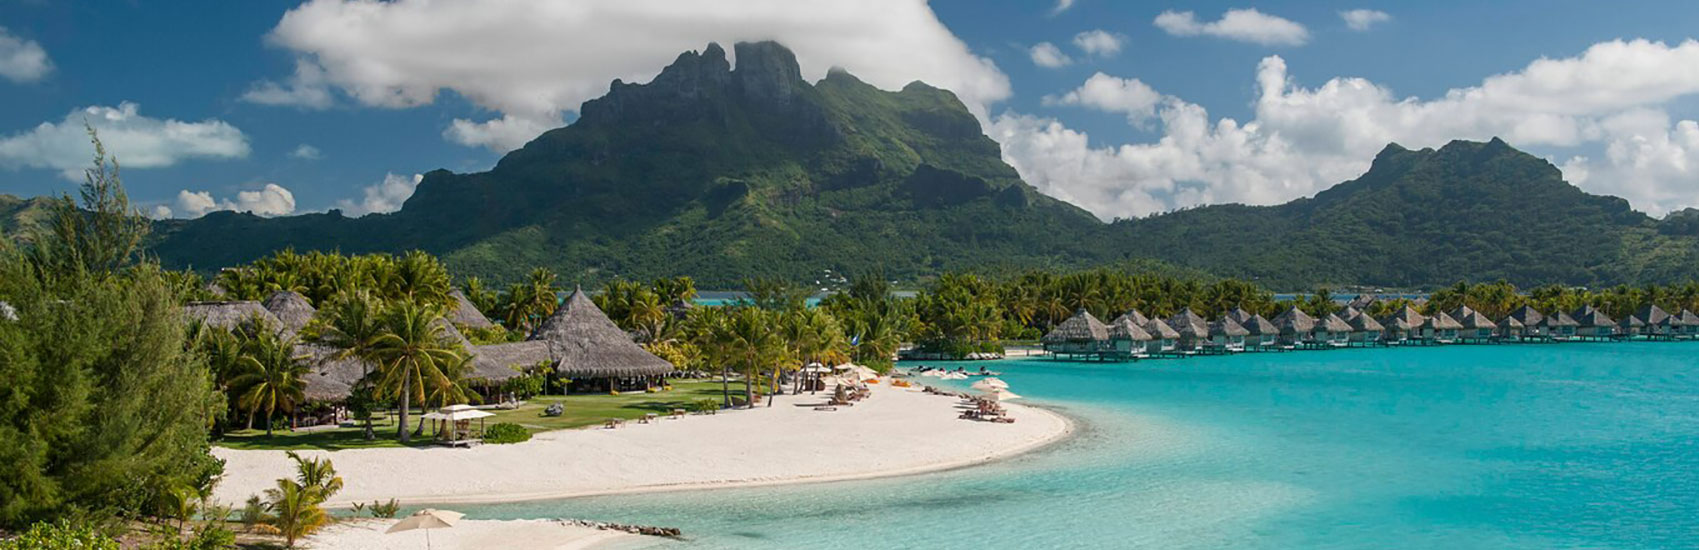 The St. Regis Bora Bora Resort 0